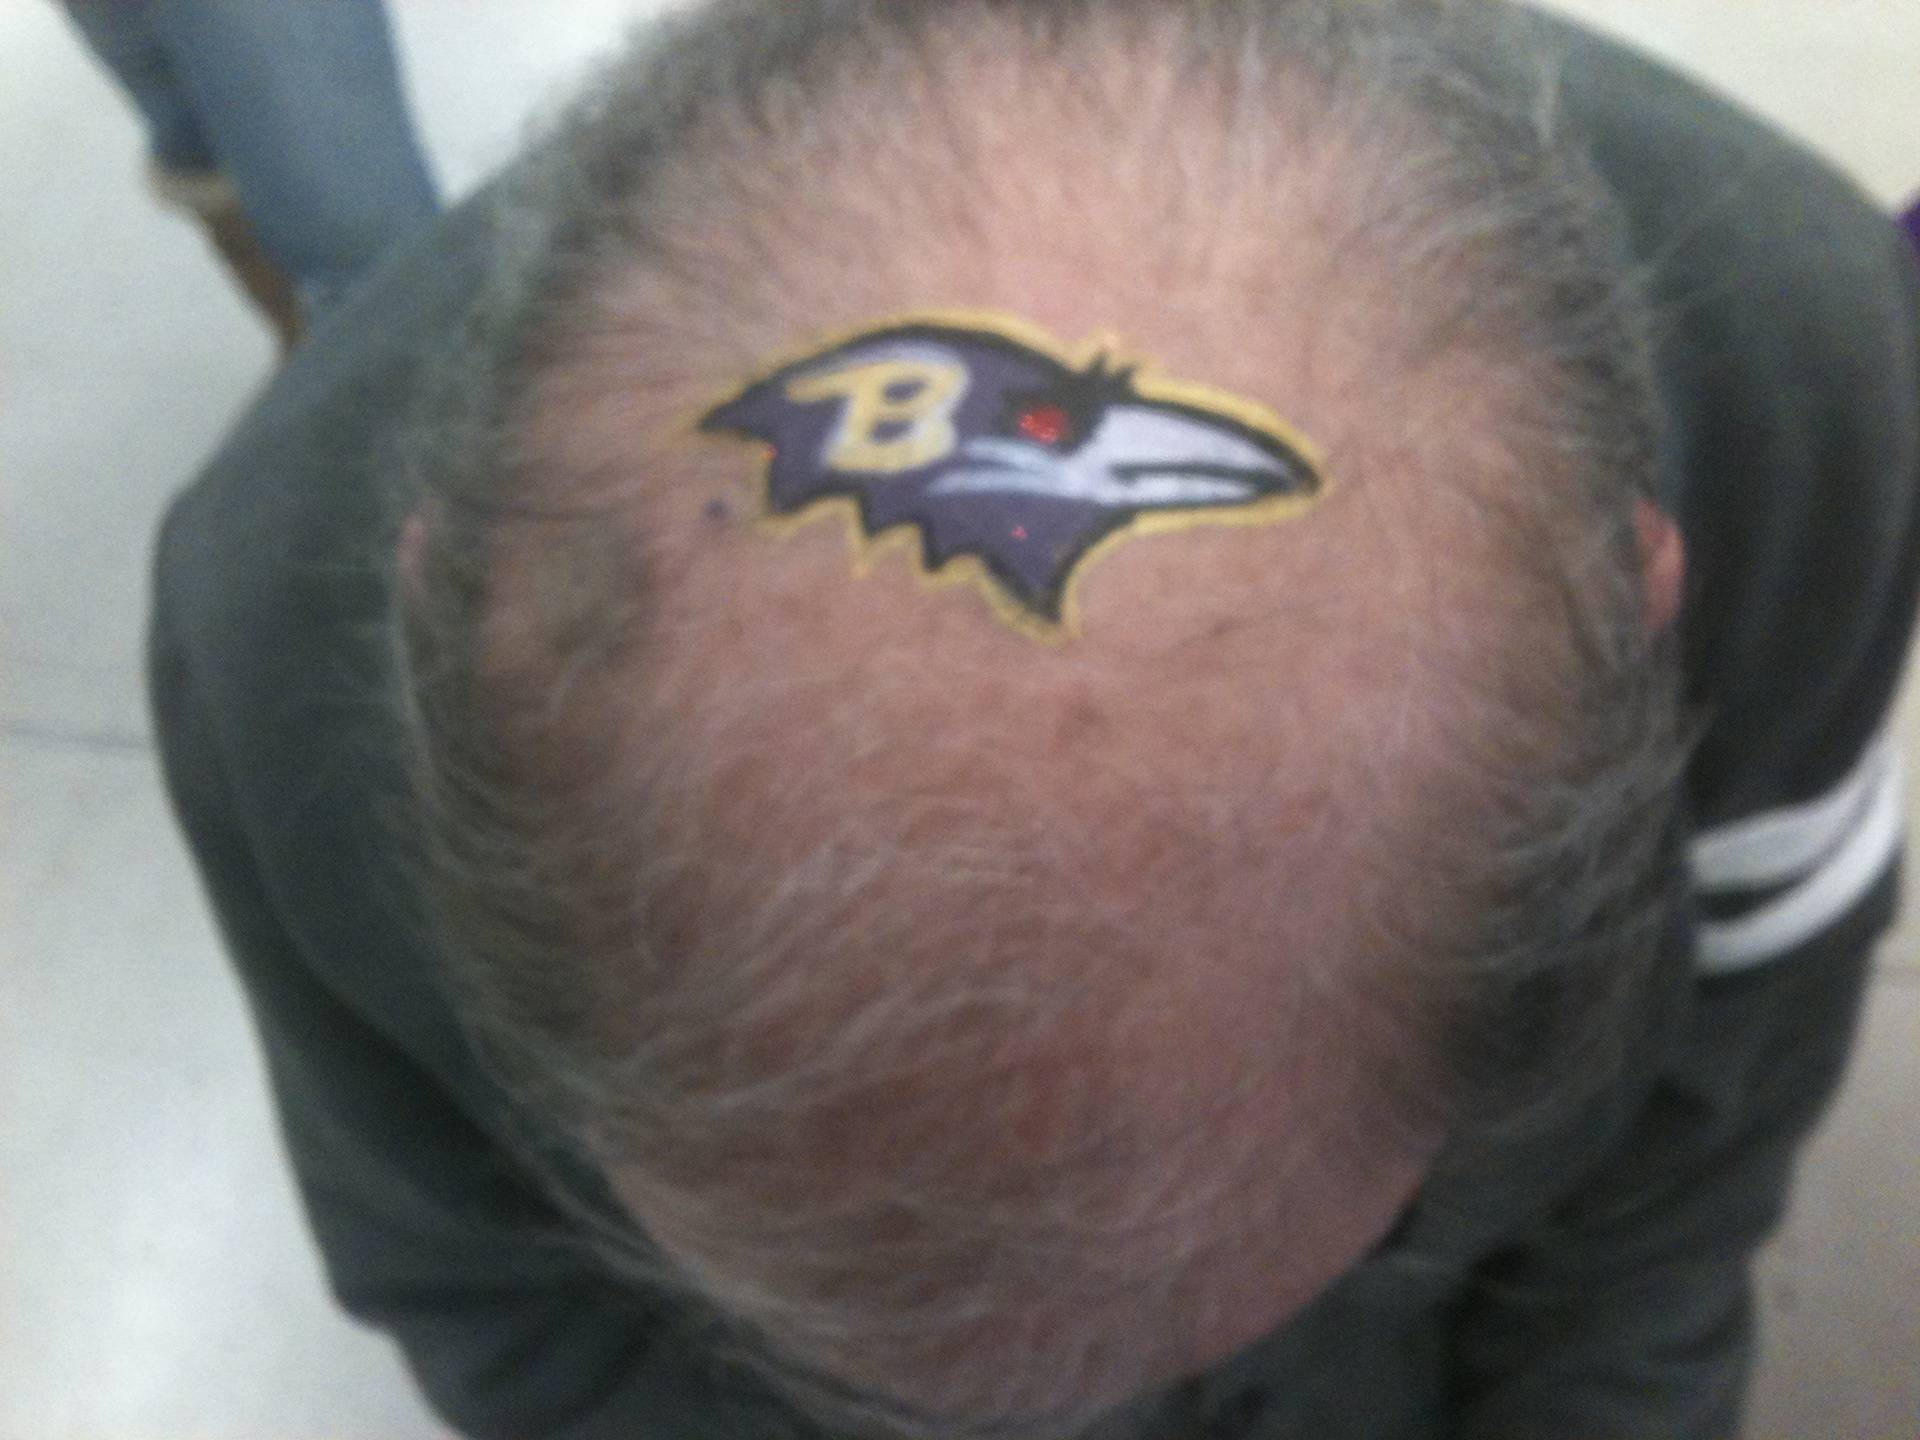 Yes, this is the top of someone's head!